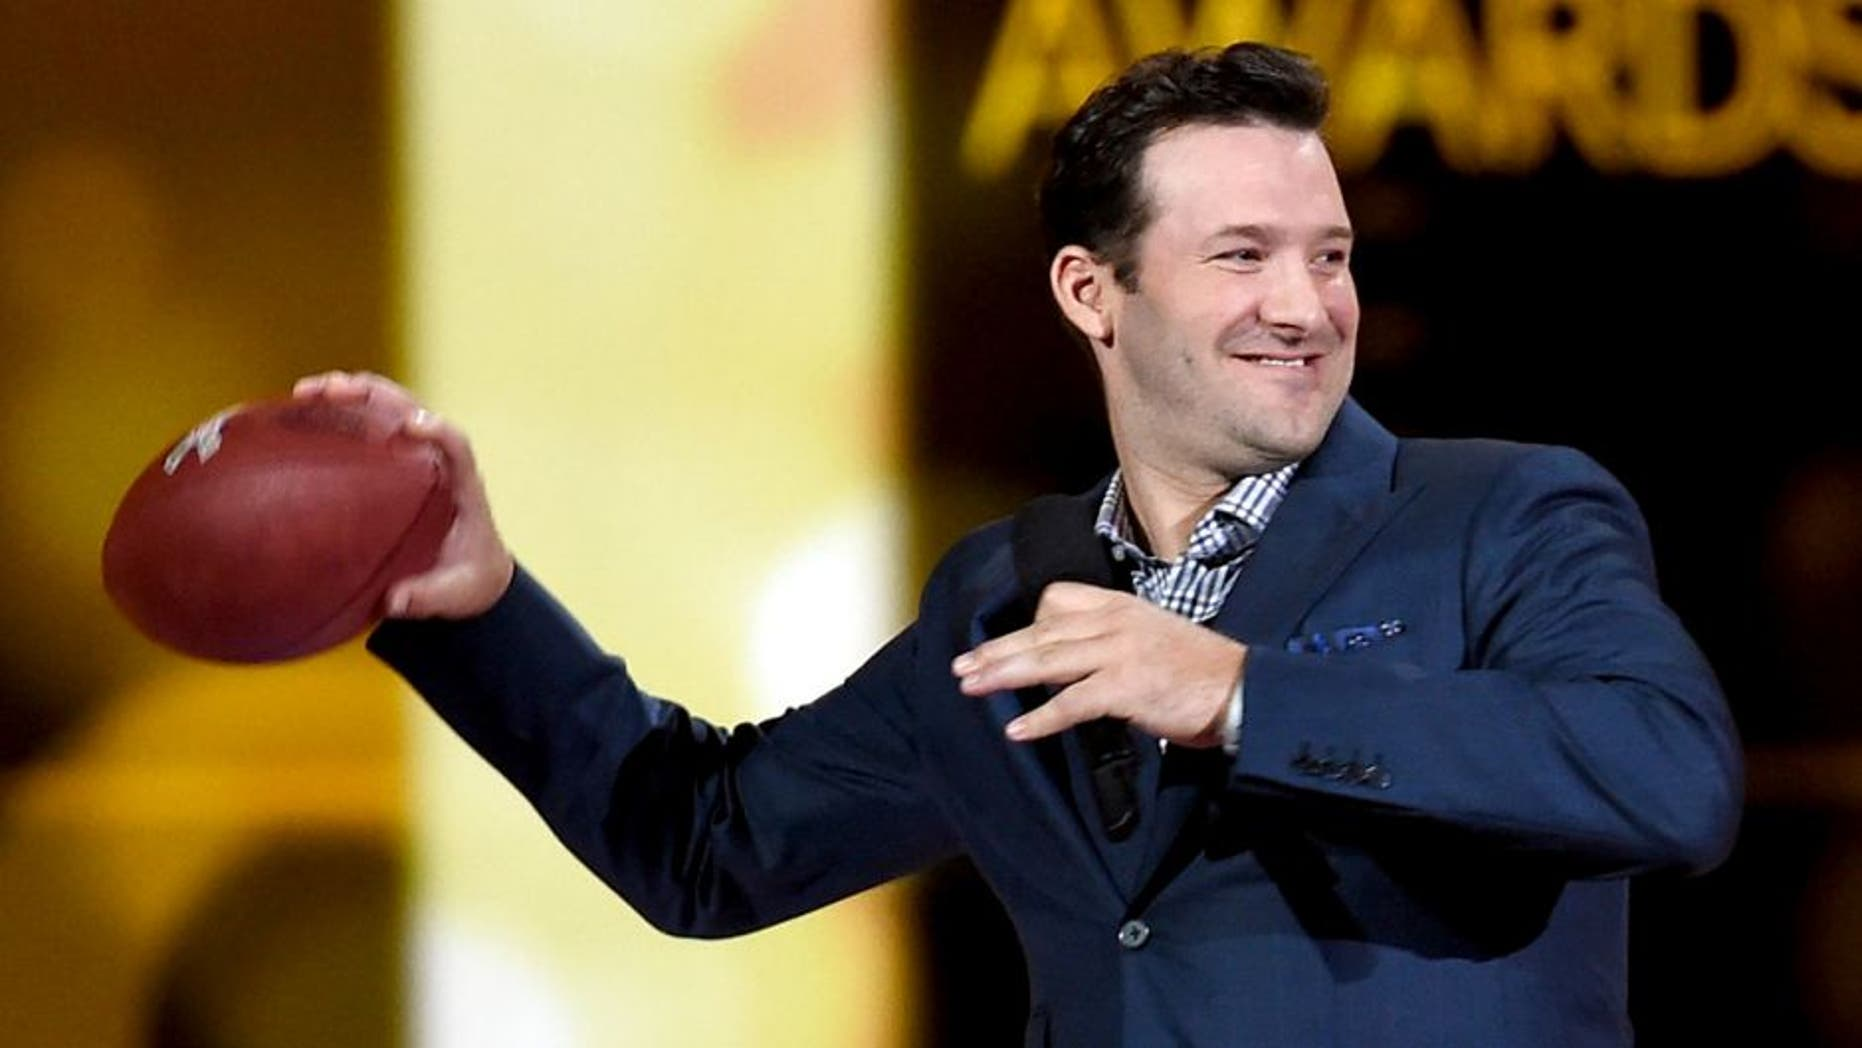 ARLINGTON, TX - APRIL 19: Professional football player Tony Romo speaks onstage during the 50th Academy Of Country Music Awards at AT&T Stadium on April 19, 2015 in Arlington, Texas. (Photo by Ethan Miller/Getty Images for dcp)